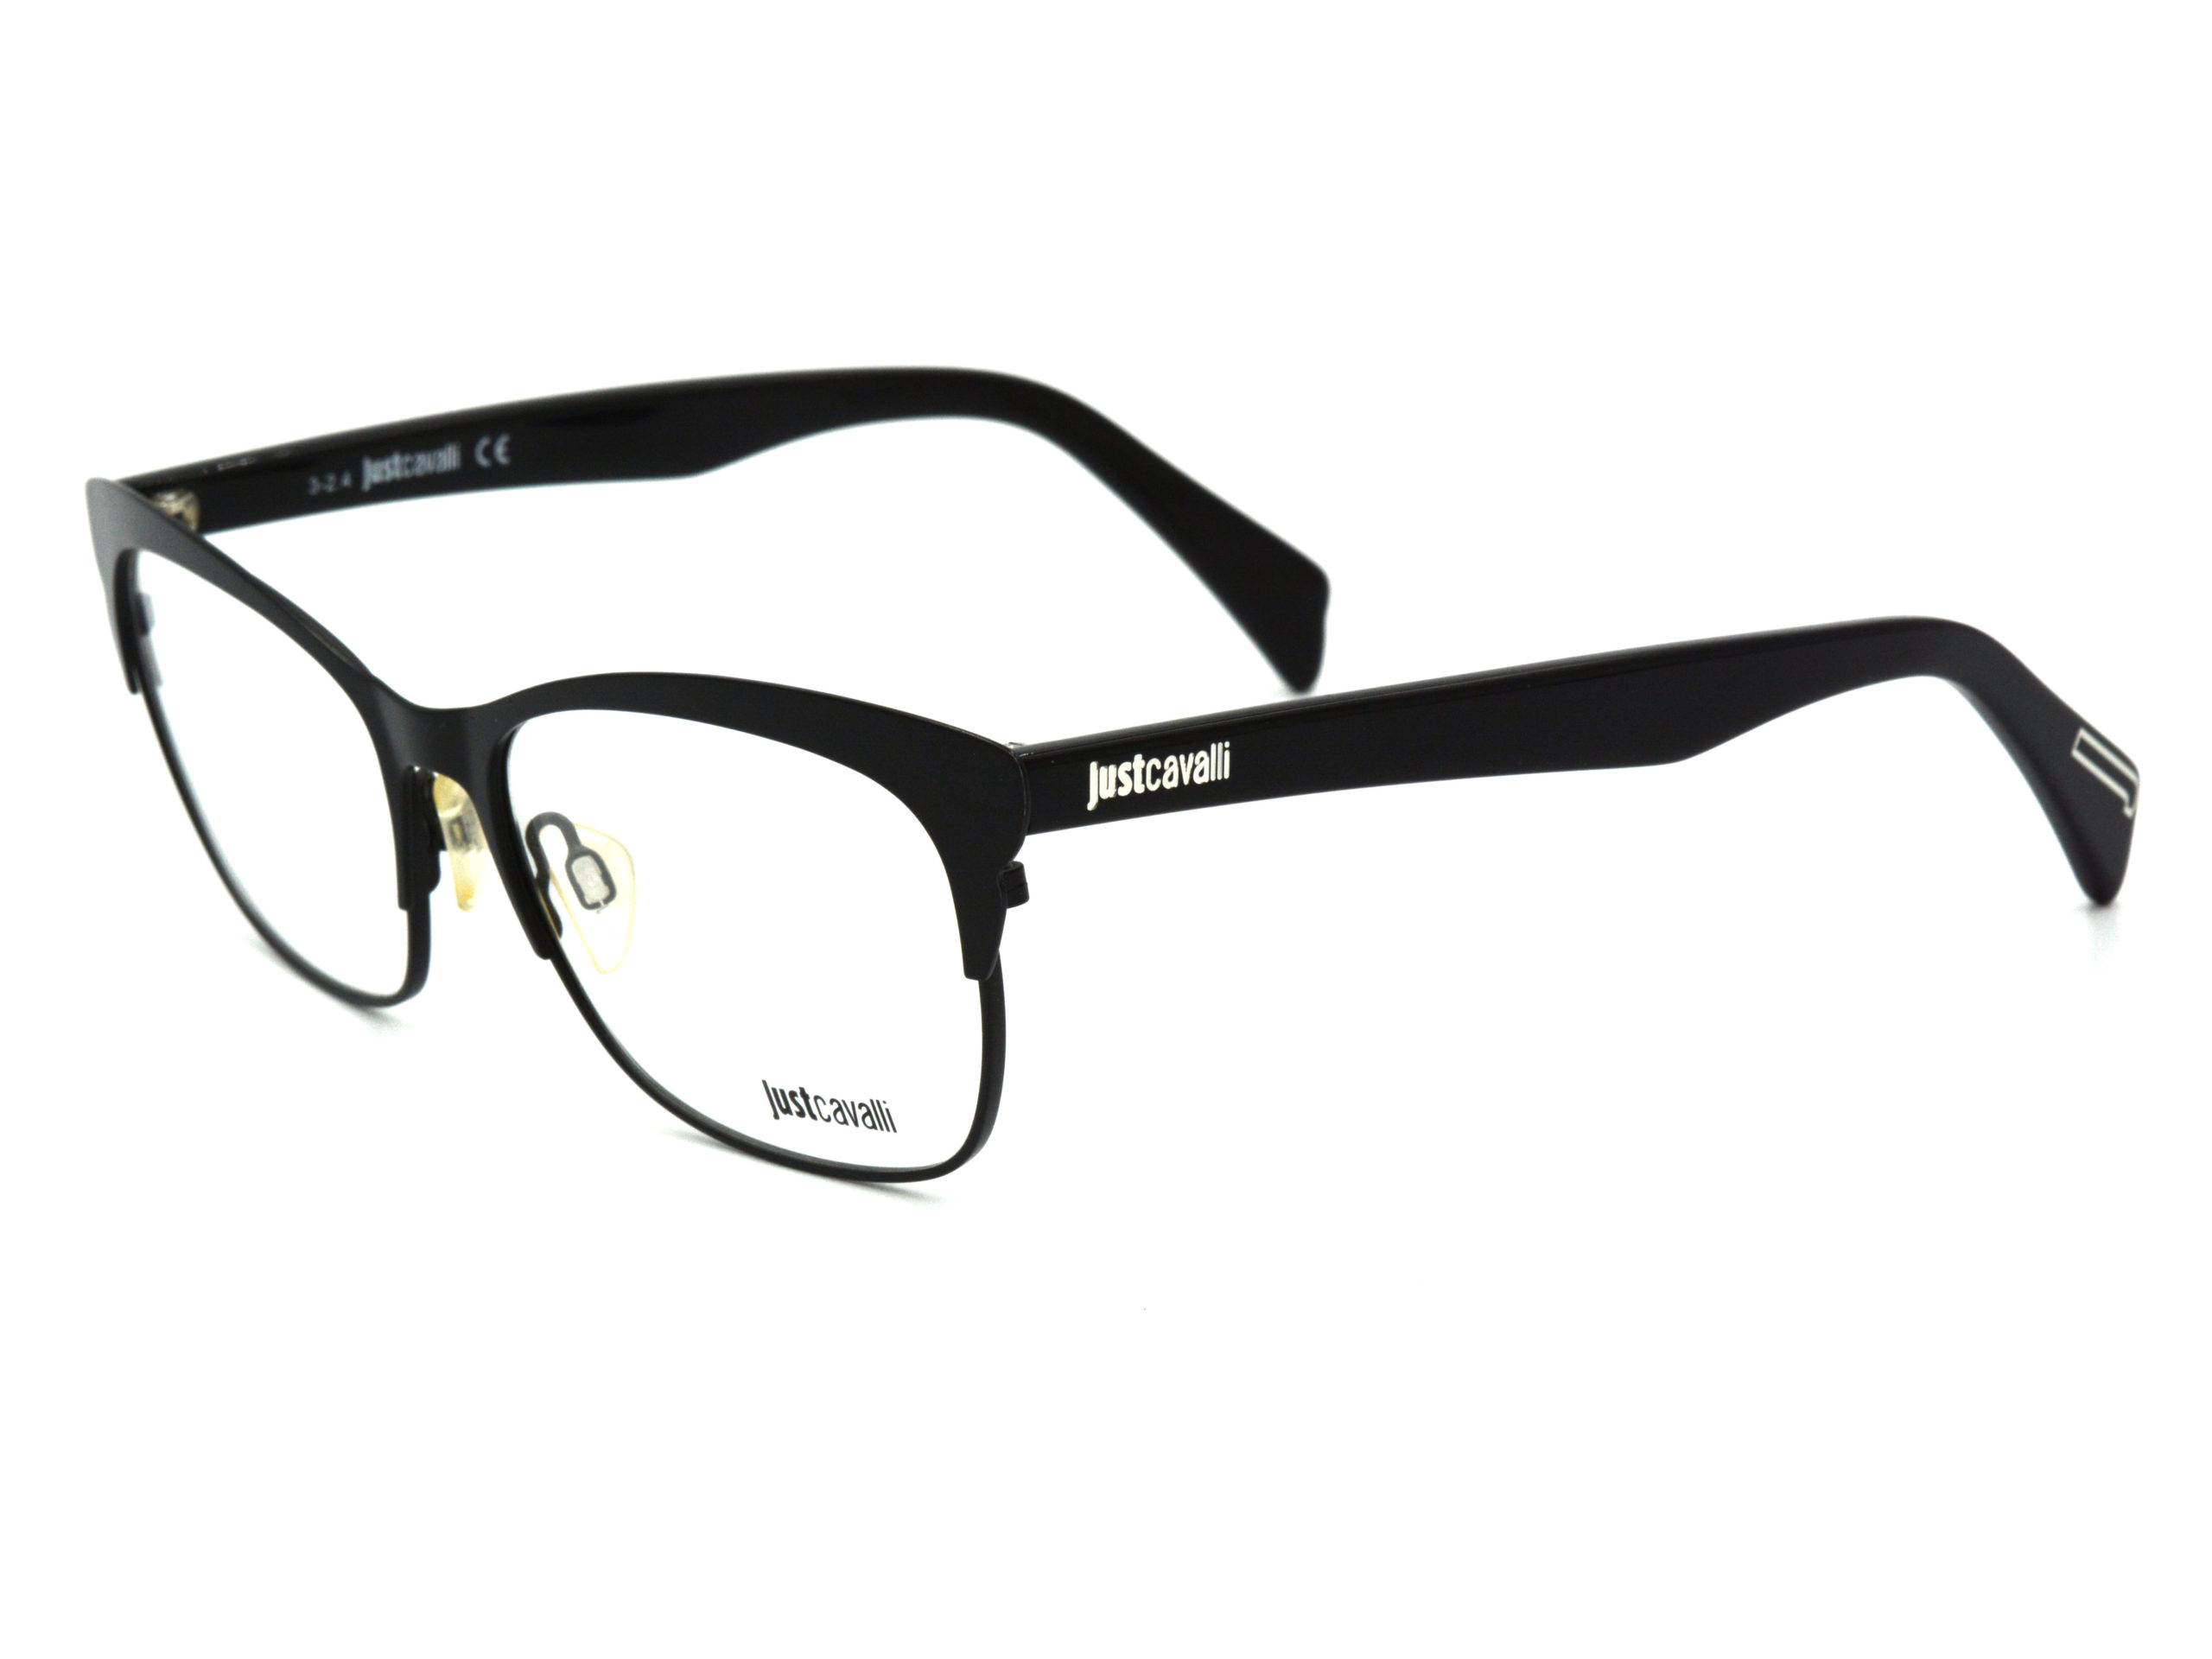 JUST CAVALLI JC0703 C001 Prescription Glasses 2020